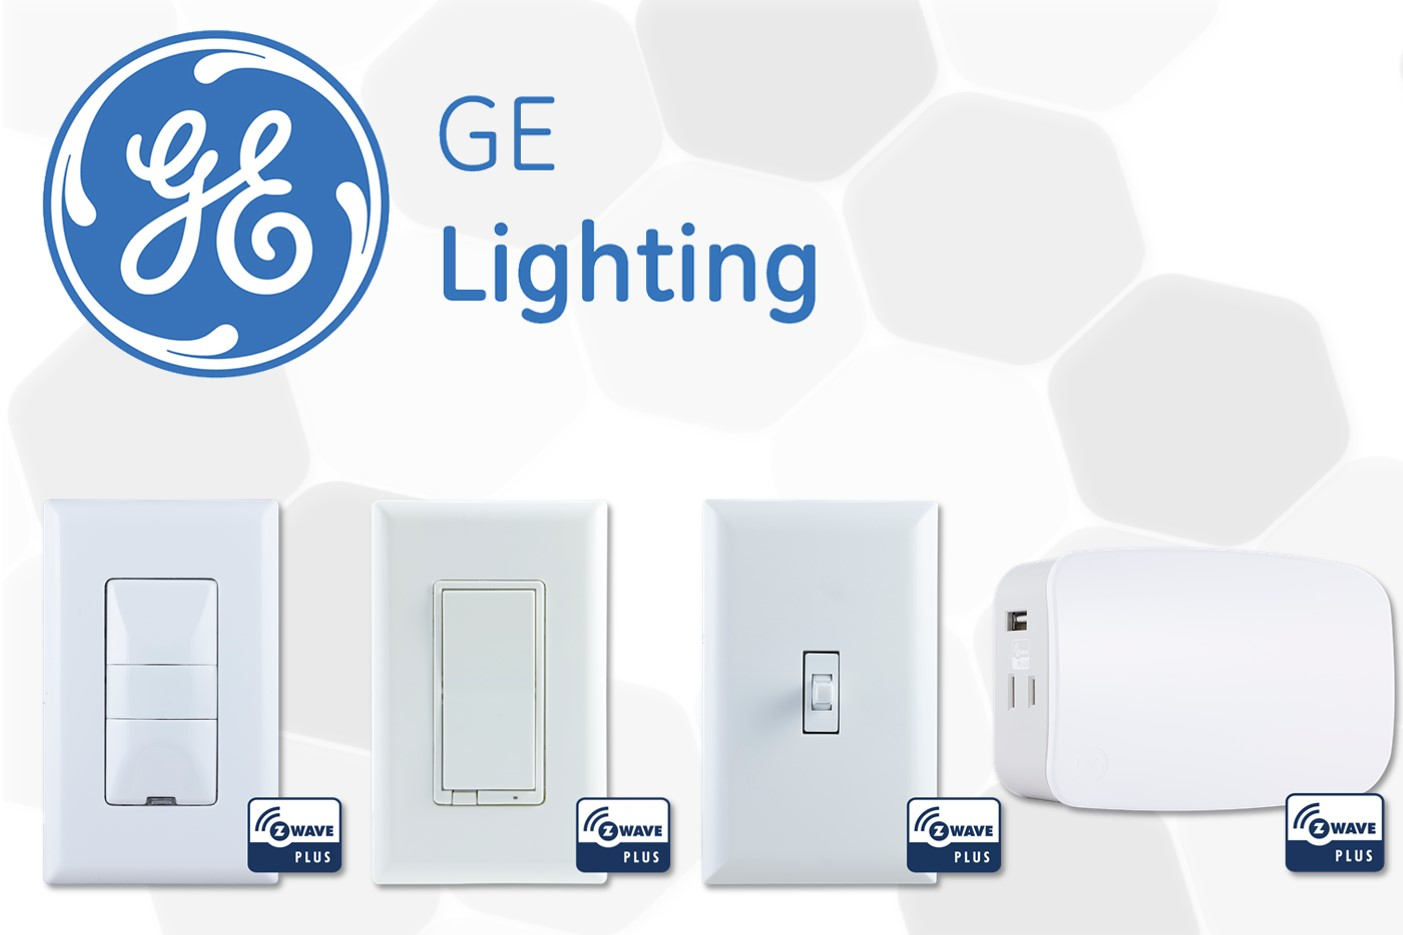 Clare Supports Lighting From GE!